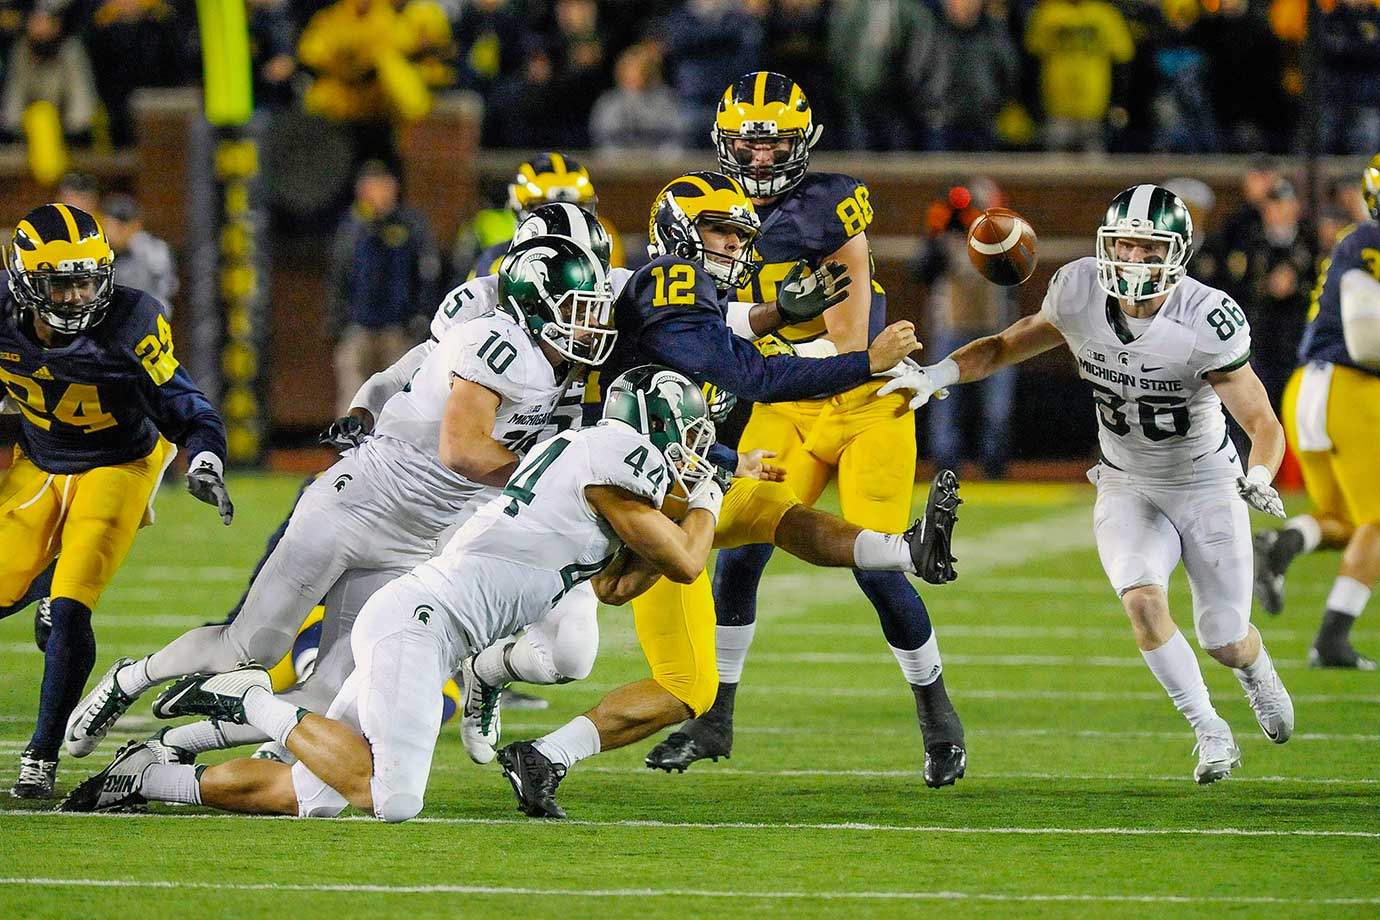 Hope. Horror. Heartbreak. Those three words sum up one of the craziest endings of the 2015 season. Up 23–21 with 10 seconds to go—and after leading the Spartans all game—Michigan chose to punt on 4th-and-short. But the Wolverines botched the kick, and the Spartans' Jalen Watts-Jackson scooped up the loose ball and raced to the end zone for the winning score.